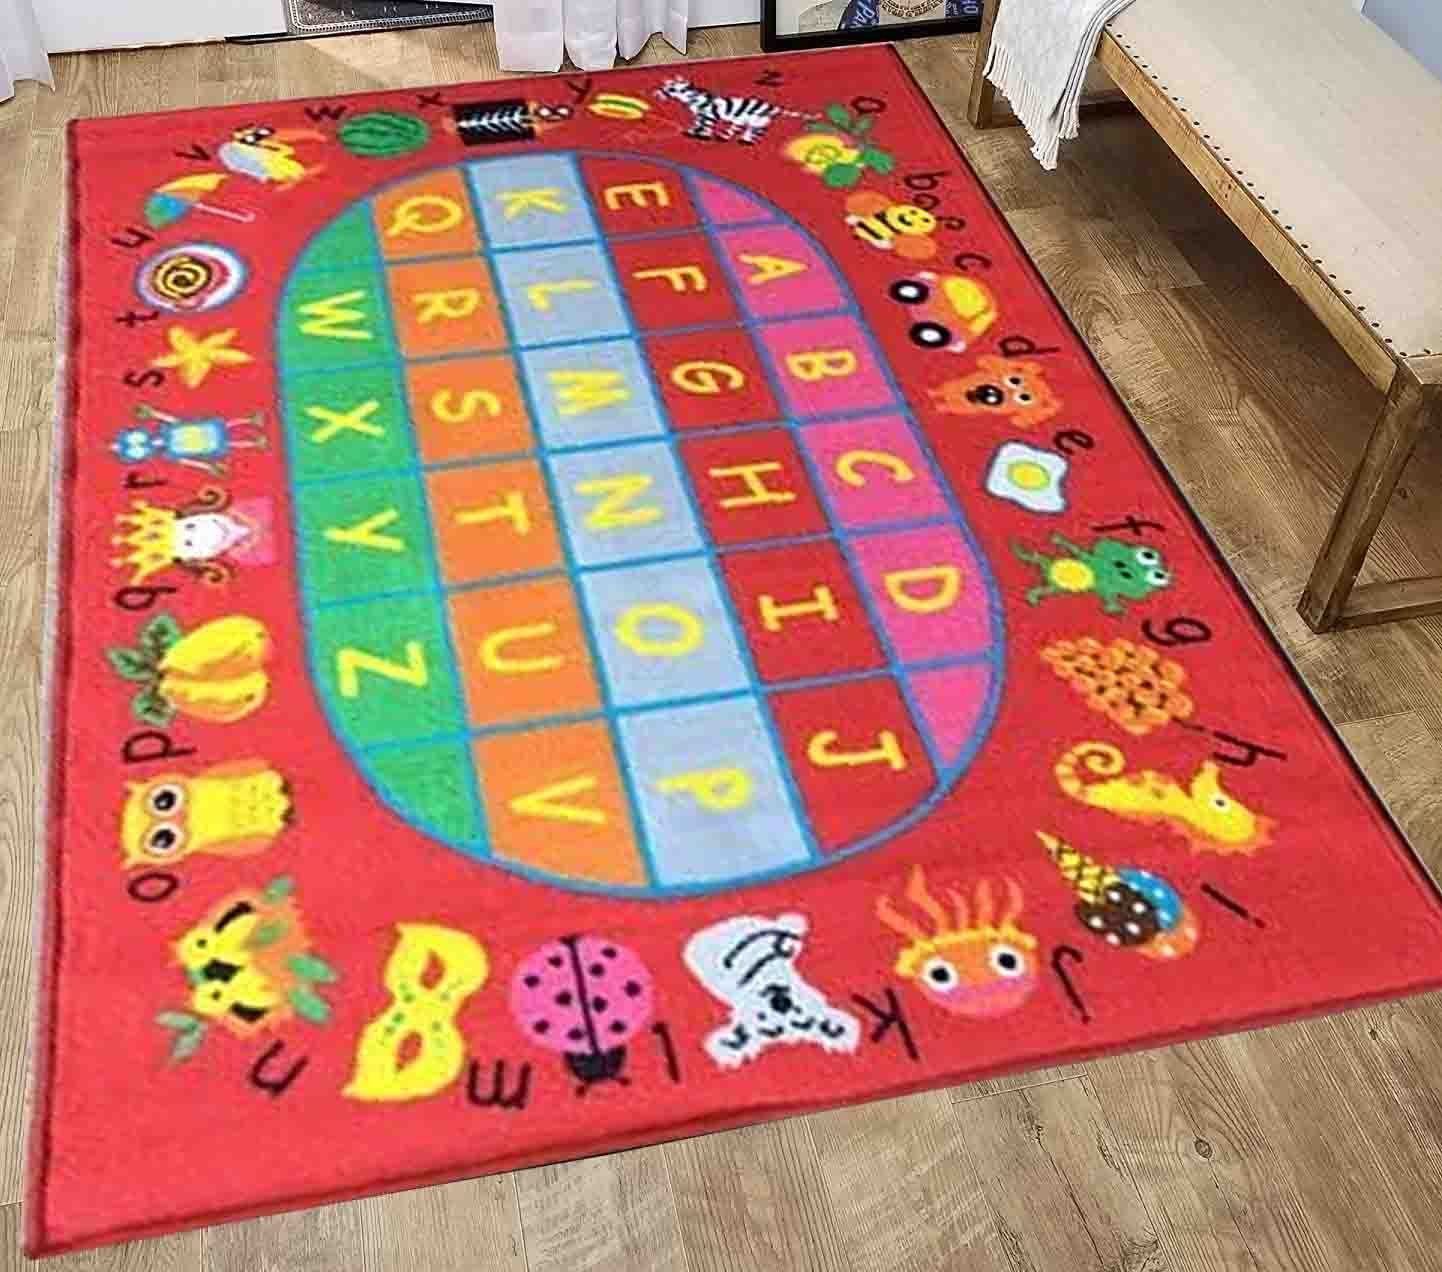 Educational ABC Alphabet Balloons 5 Ft. X 7 Ft. Area Rug KIDS CHILDREN SCHOOL CLASSROOM BEDROOM EDUCATIONAL RUG NON SKID GEL RUG